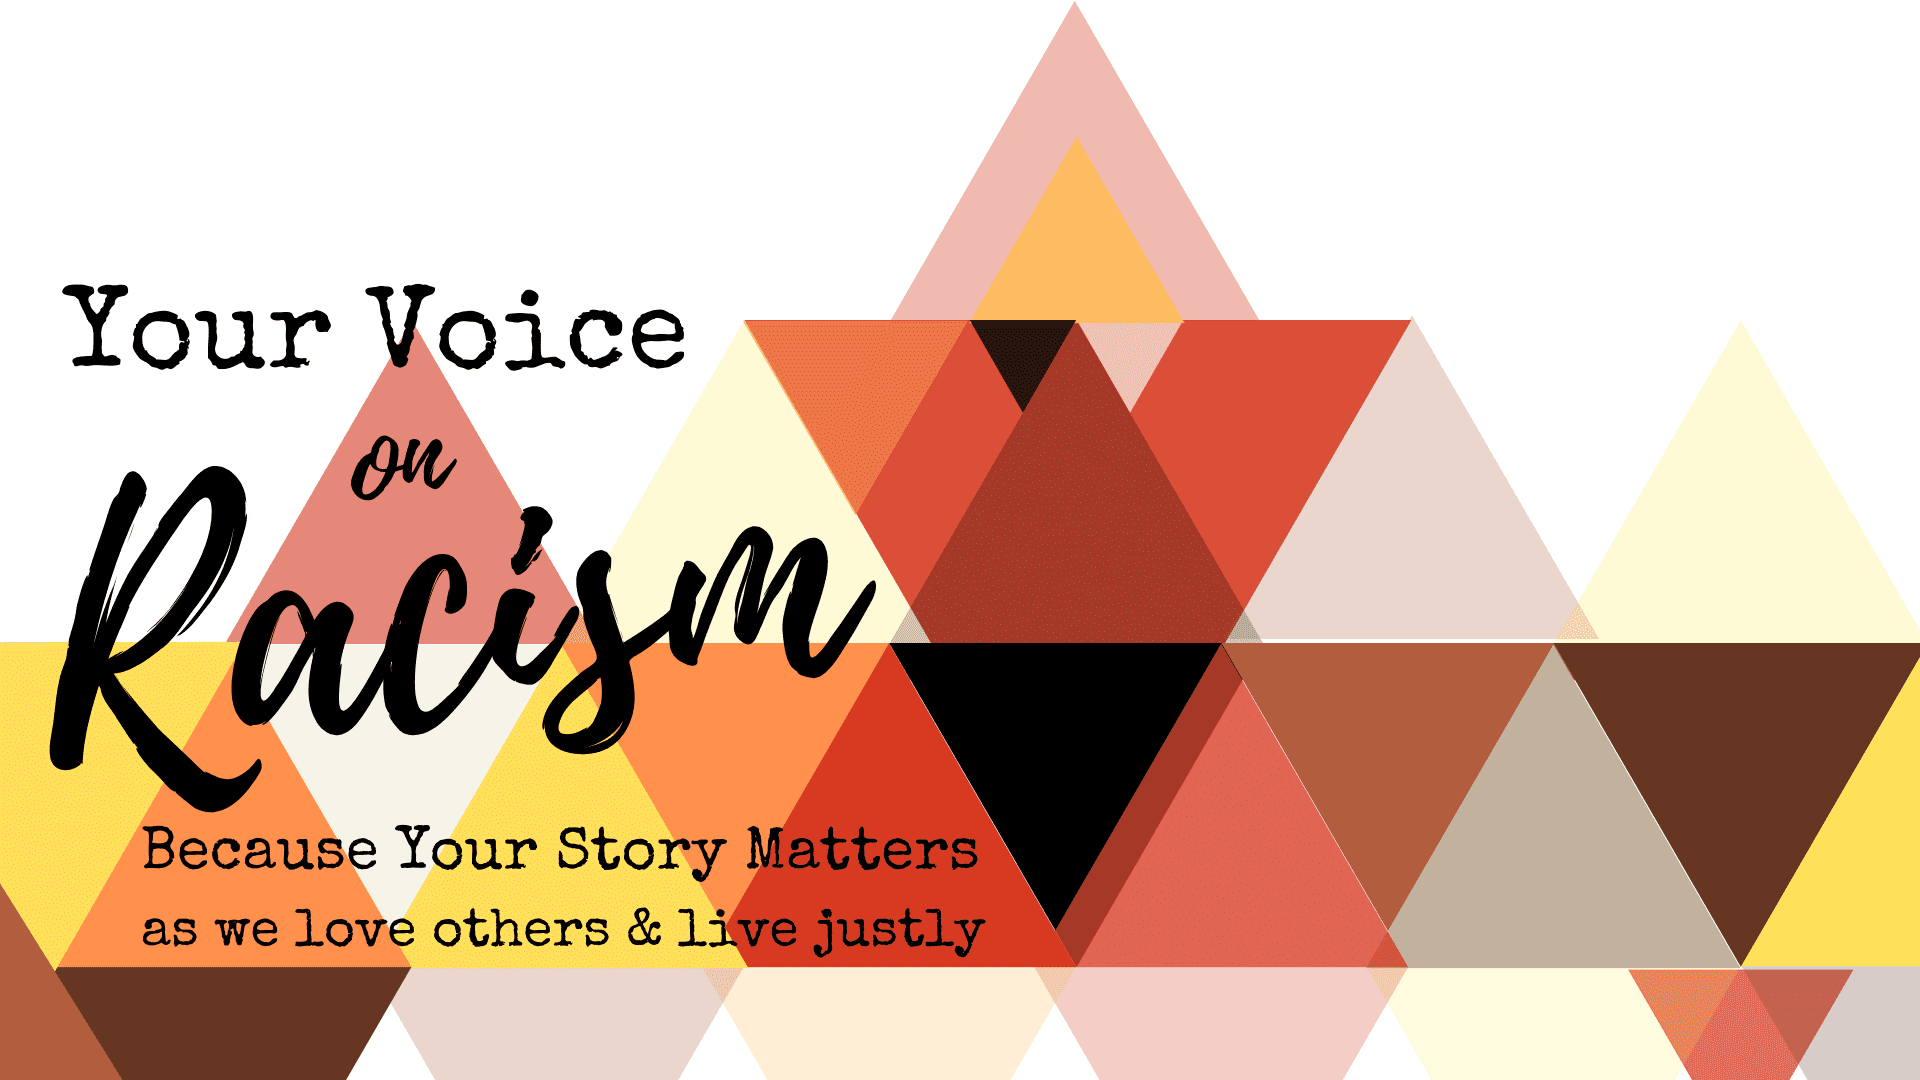 Your Voice On Racism